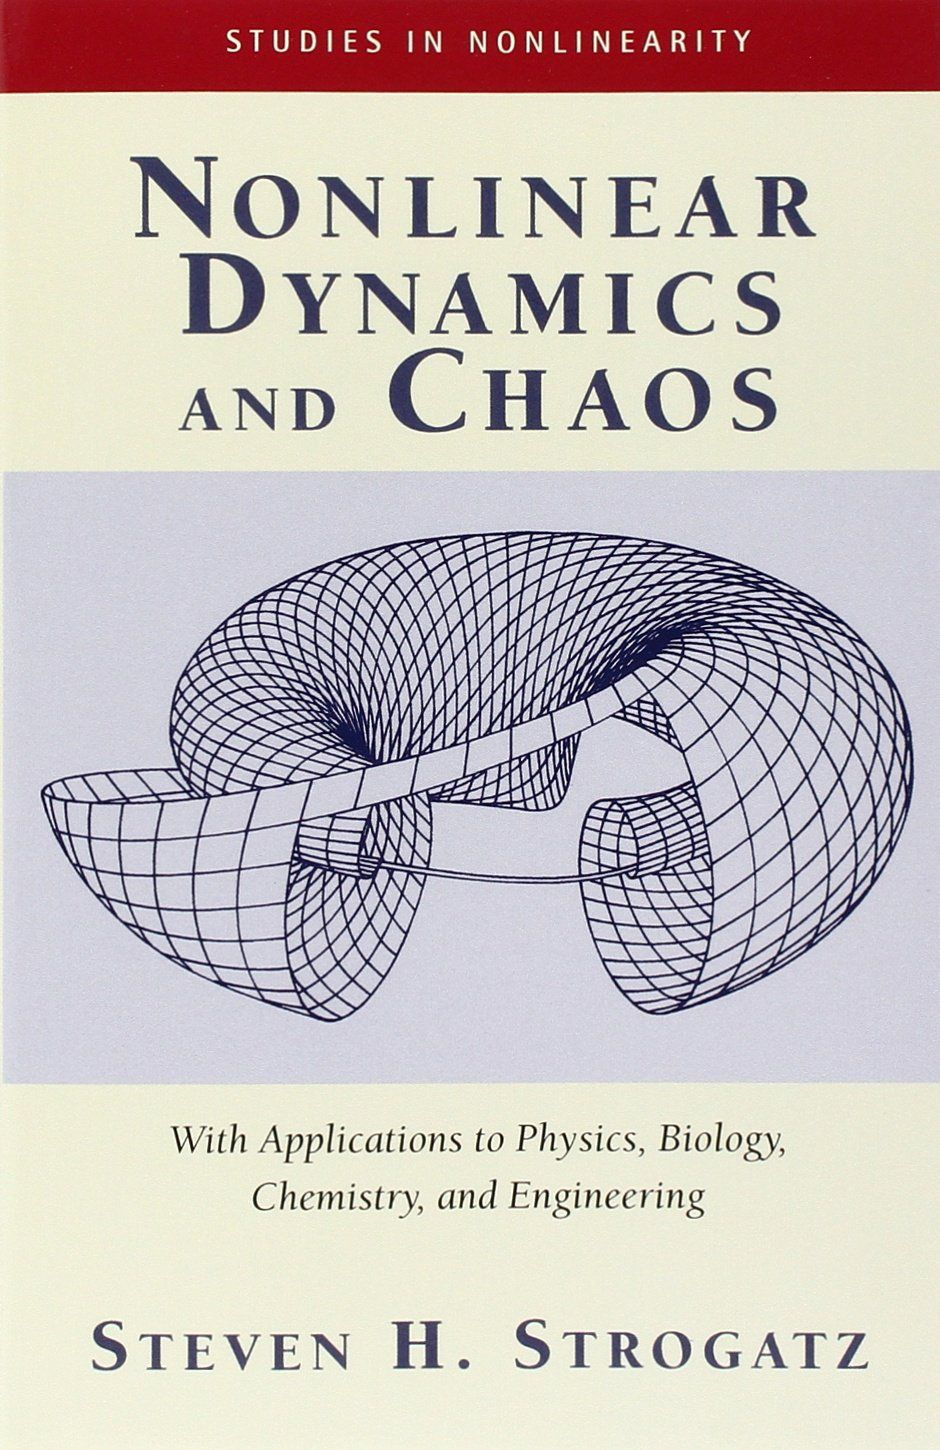 No linear dynamics and chaos in PDF format, a basic book for